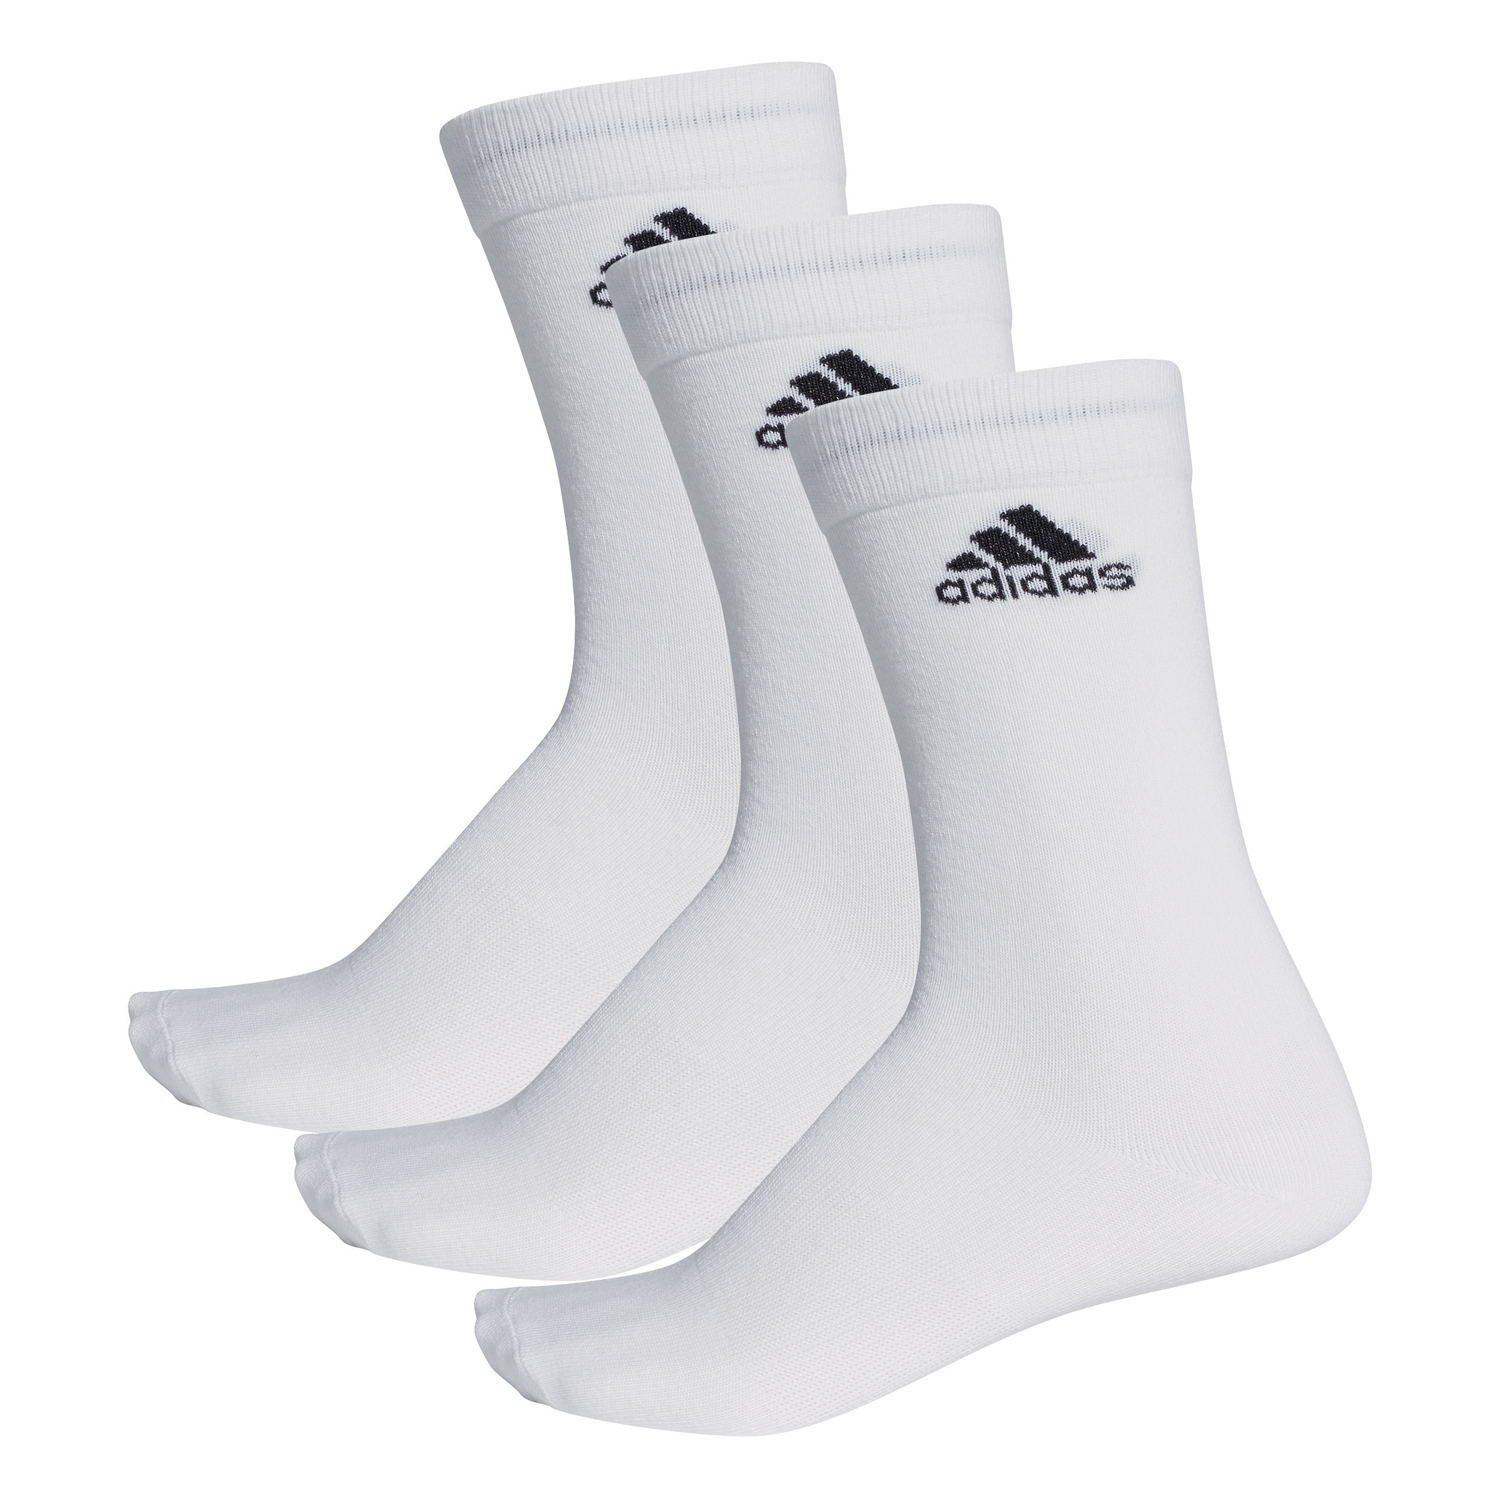 get new nice shoes detailed pictures adidas Performance Crew Thin 3PP - 3er Packung Socken Sportsocken - AA2329  weiß